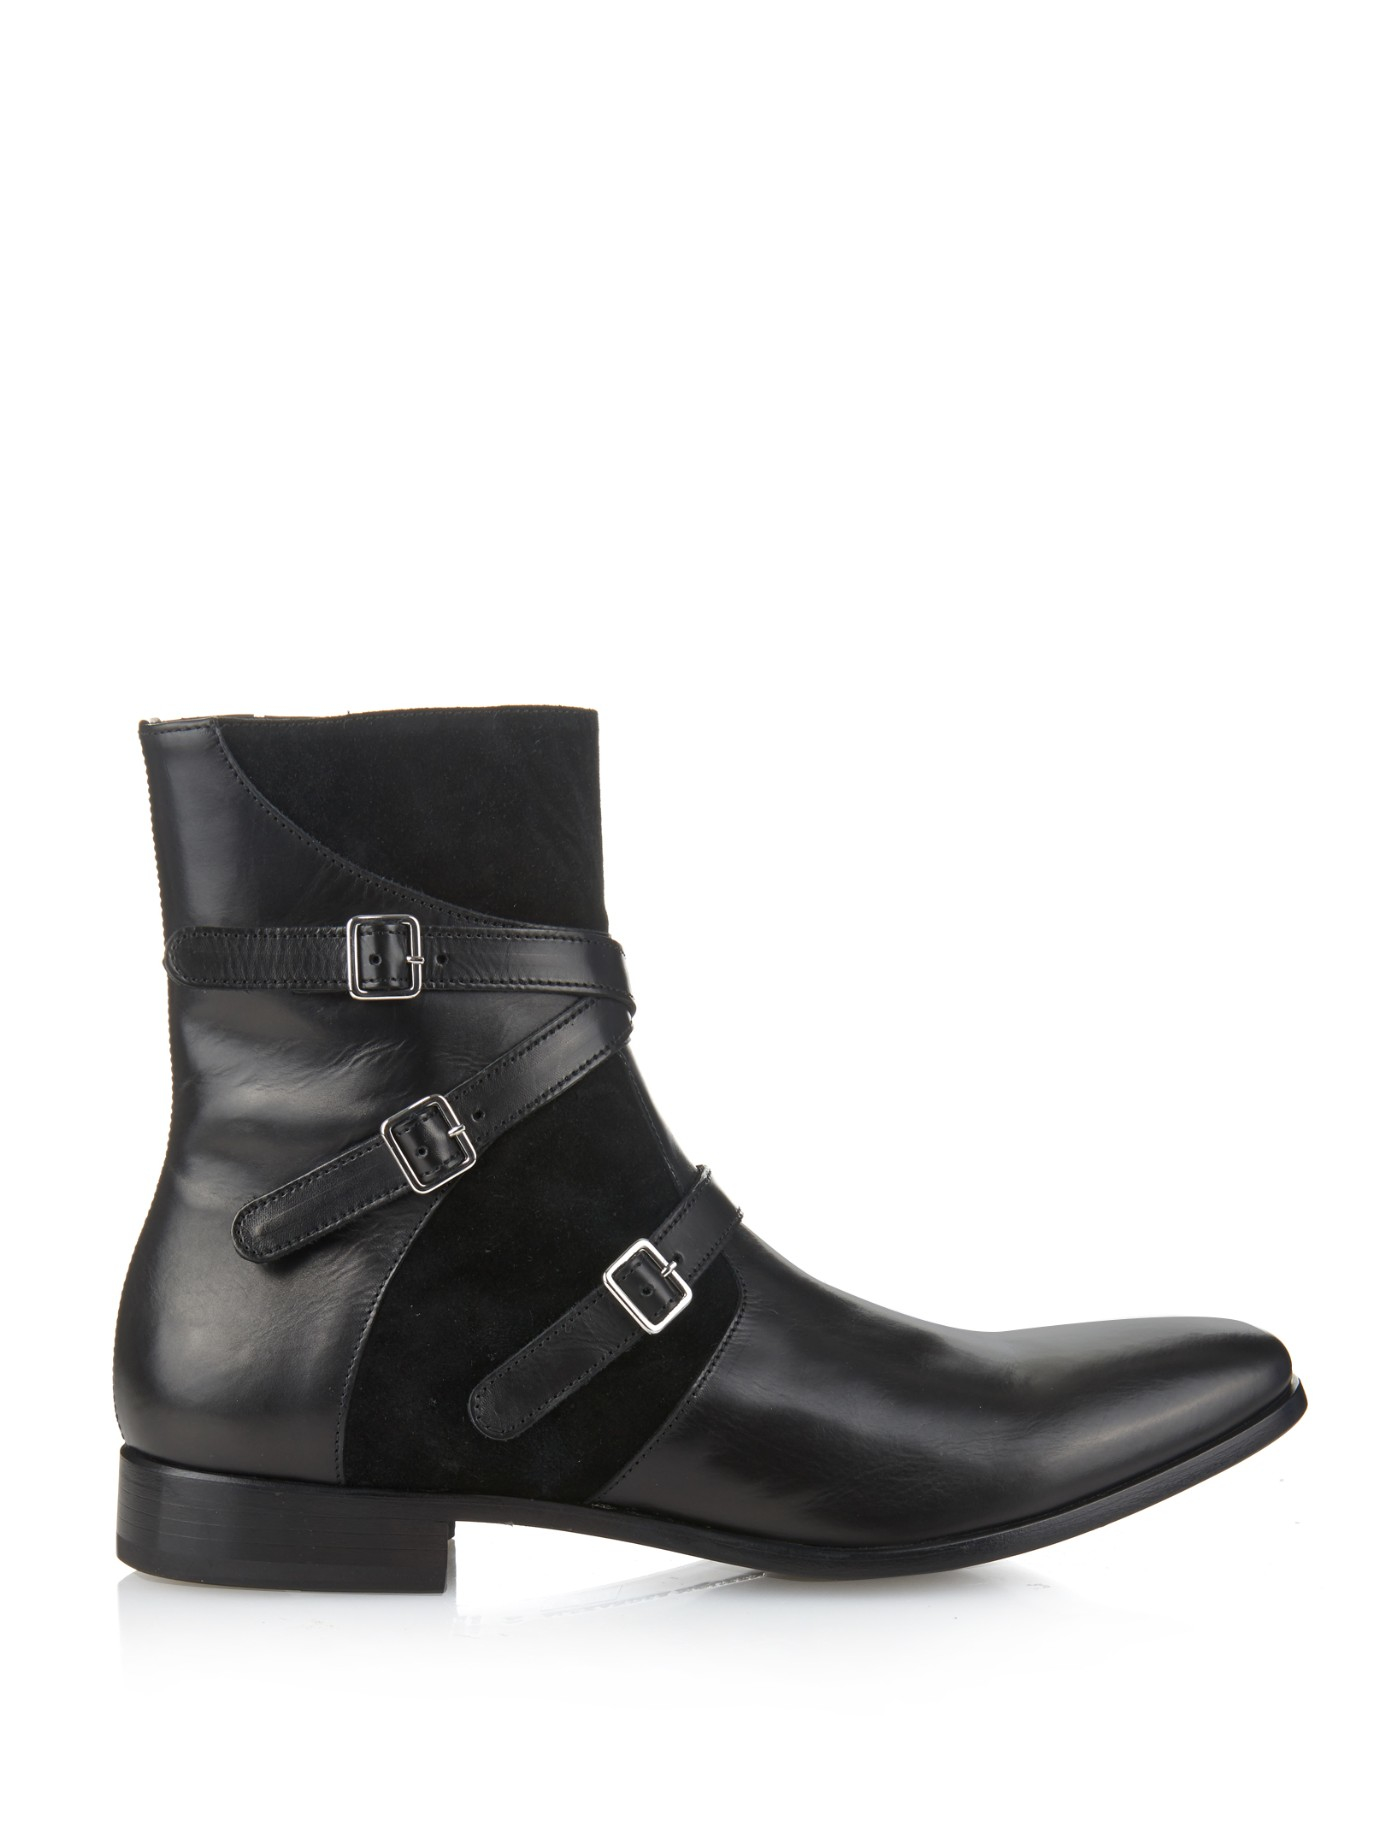 mcqueen leather and suede boots in black for